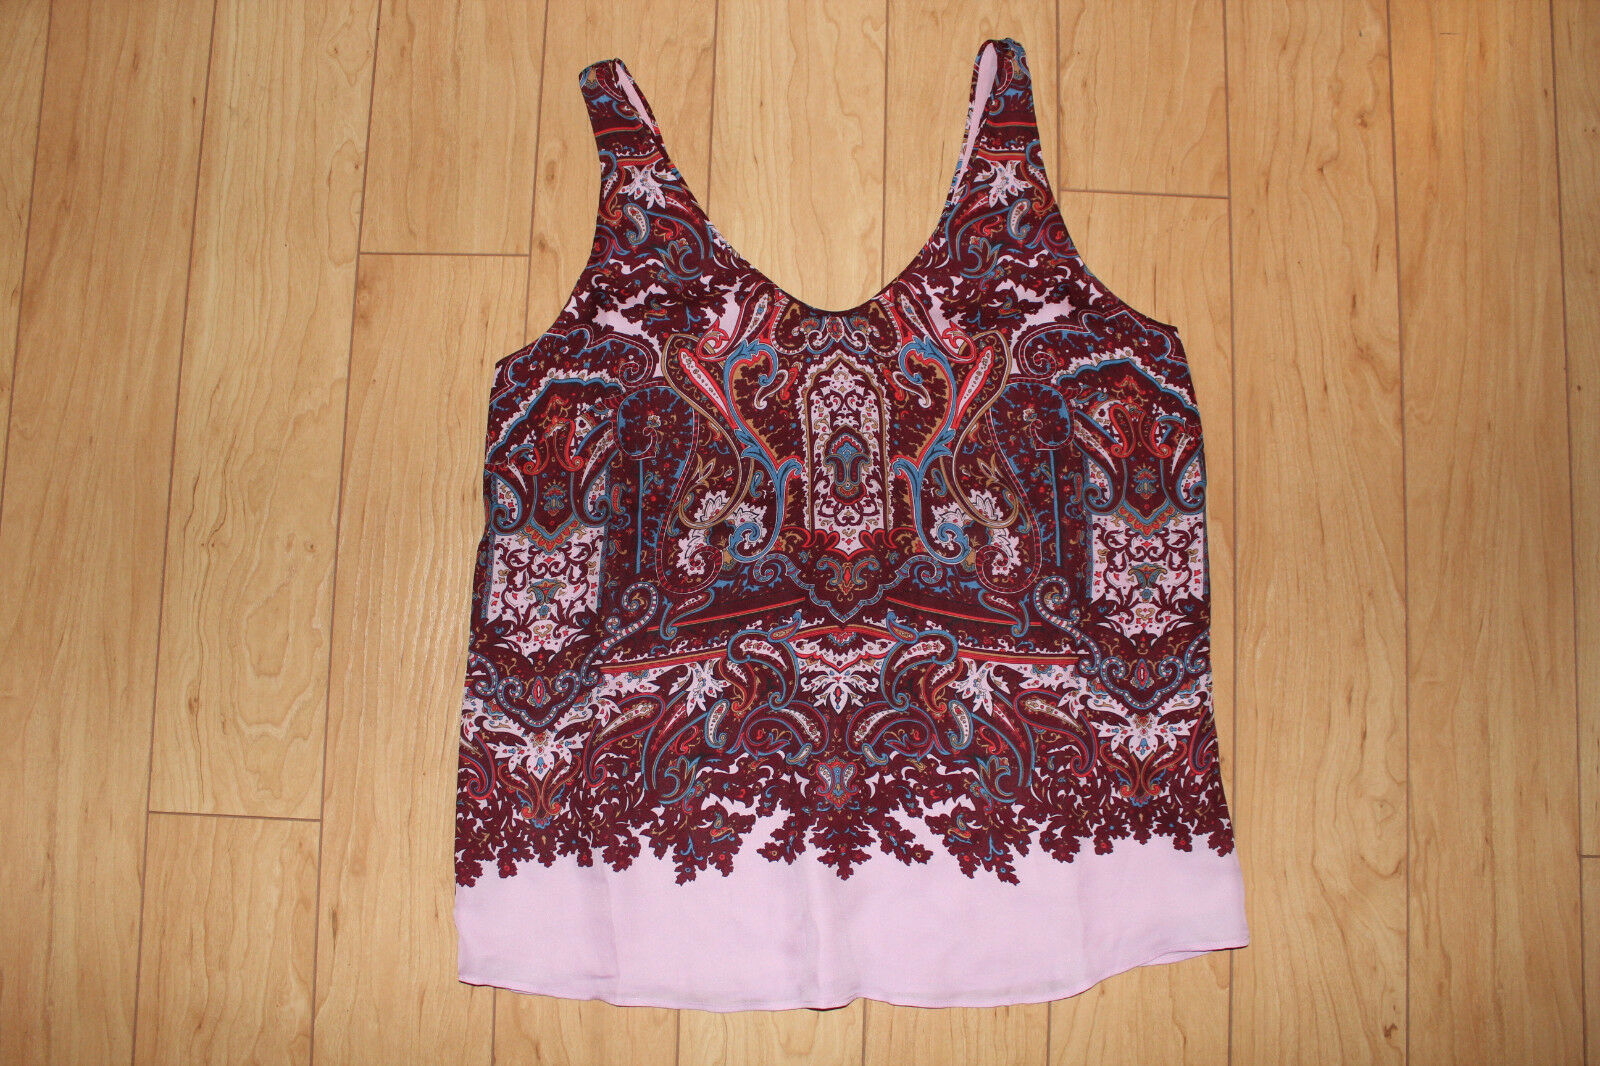 J.Crew Silk Cate Cami Tank Top in Iced Lilac Paisley Größe 8, 10 NWT